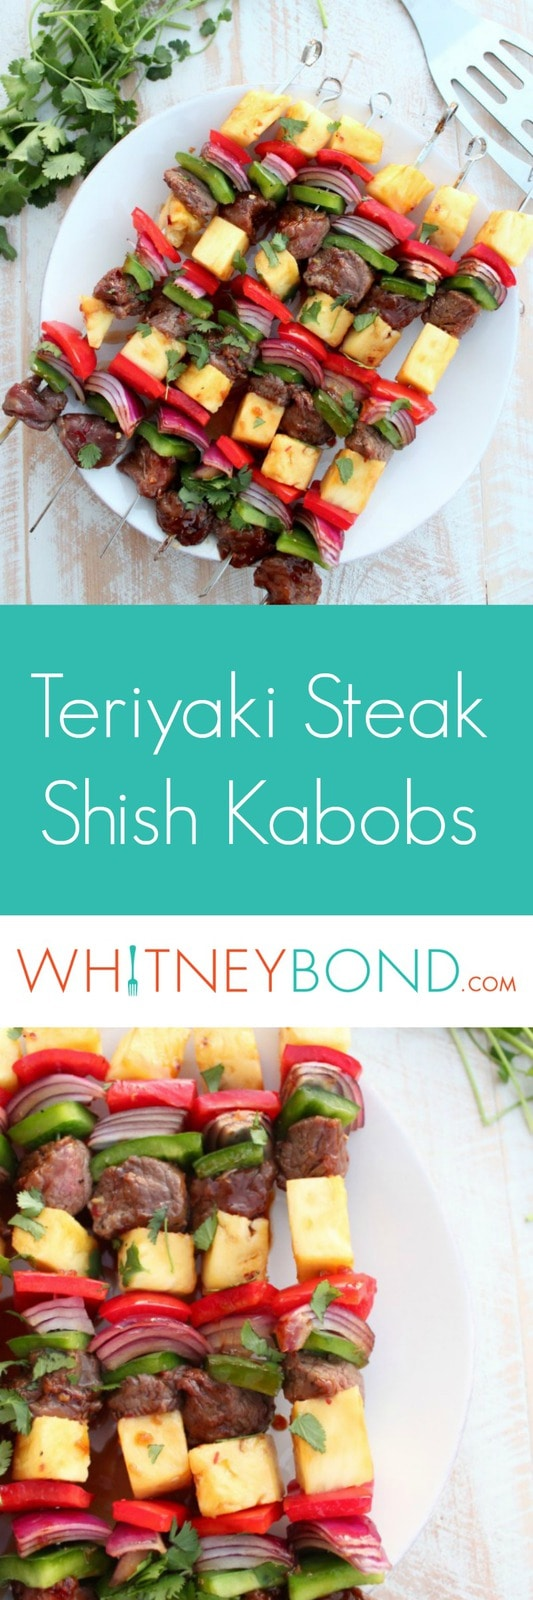 Teriyaki Steak Shish Kabob Recipe - WhitneyBond.com